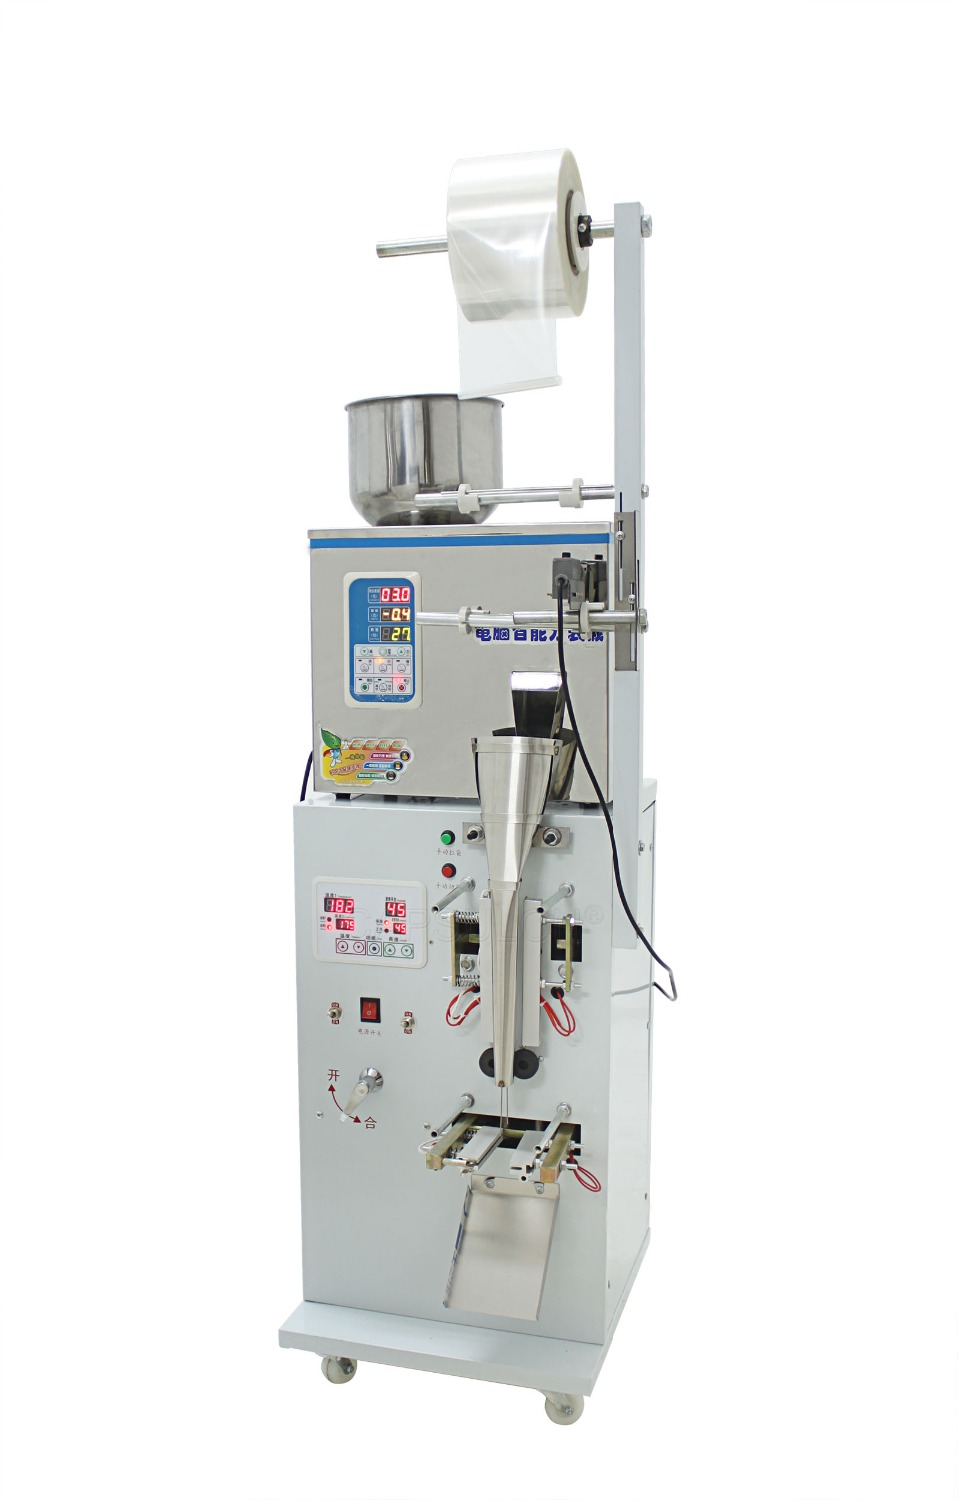 (FZZ-1)1-50g Automatic Tea Bag Packing Machine/Filling Machine/Automatic Sealing Machine Powder tea powder particles drug quantitative filling machine